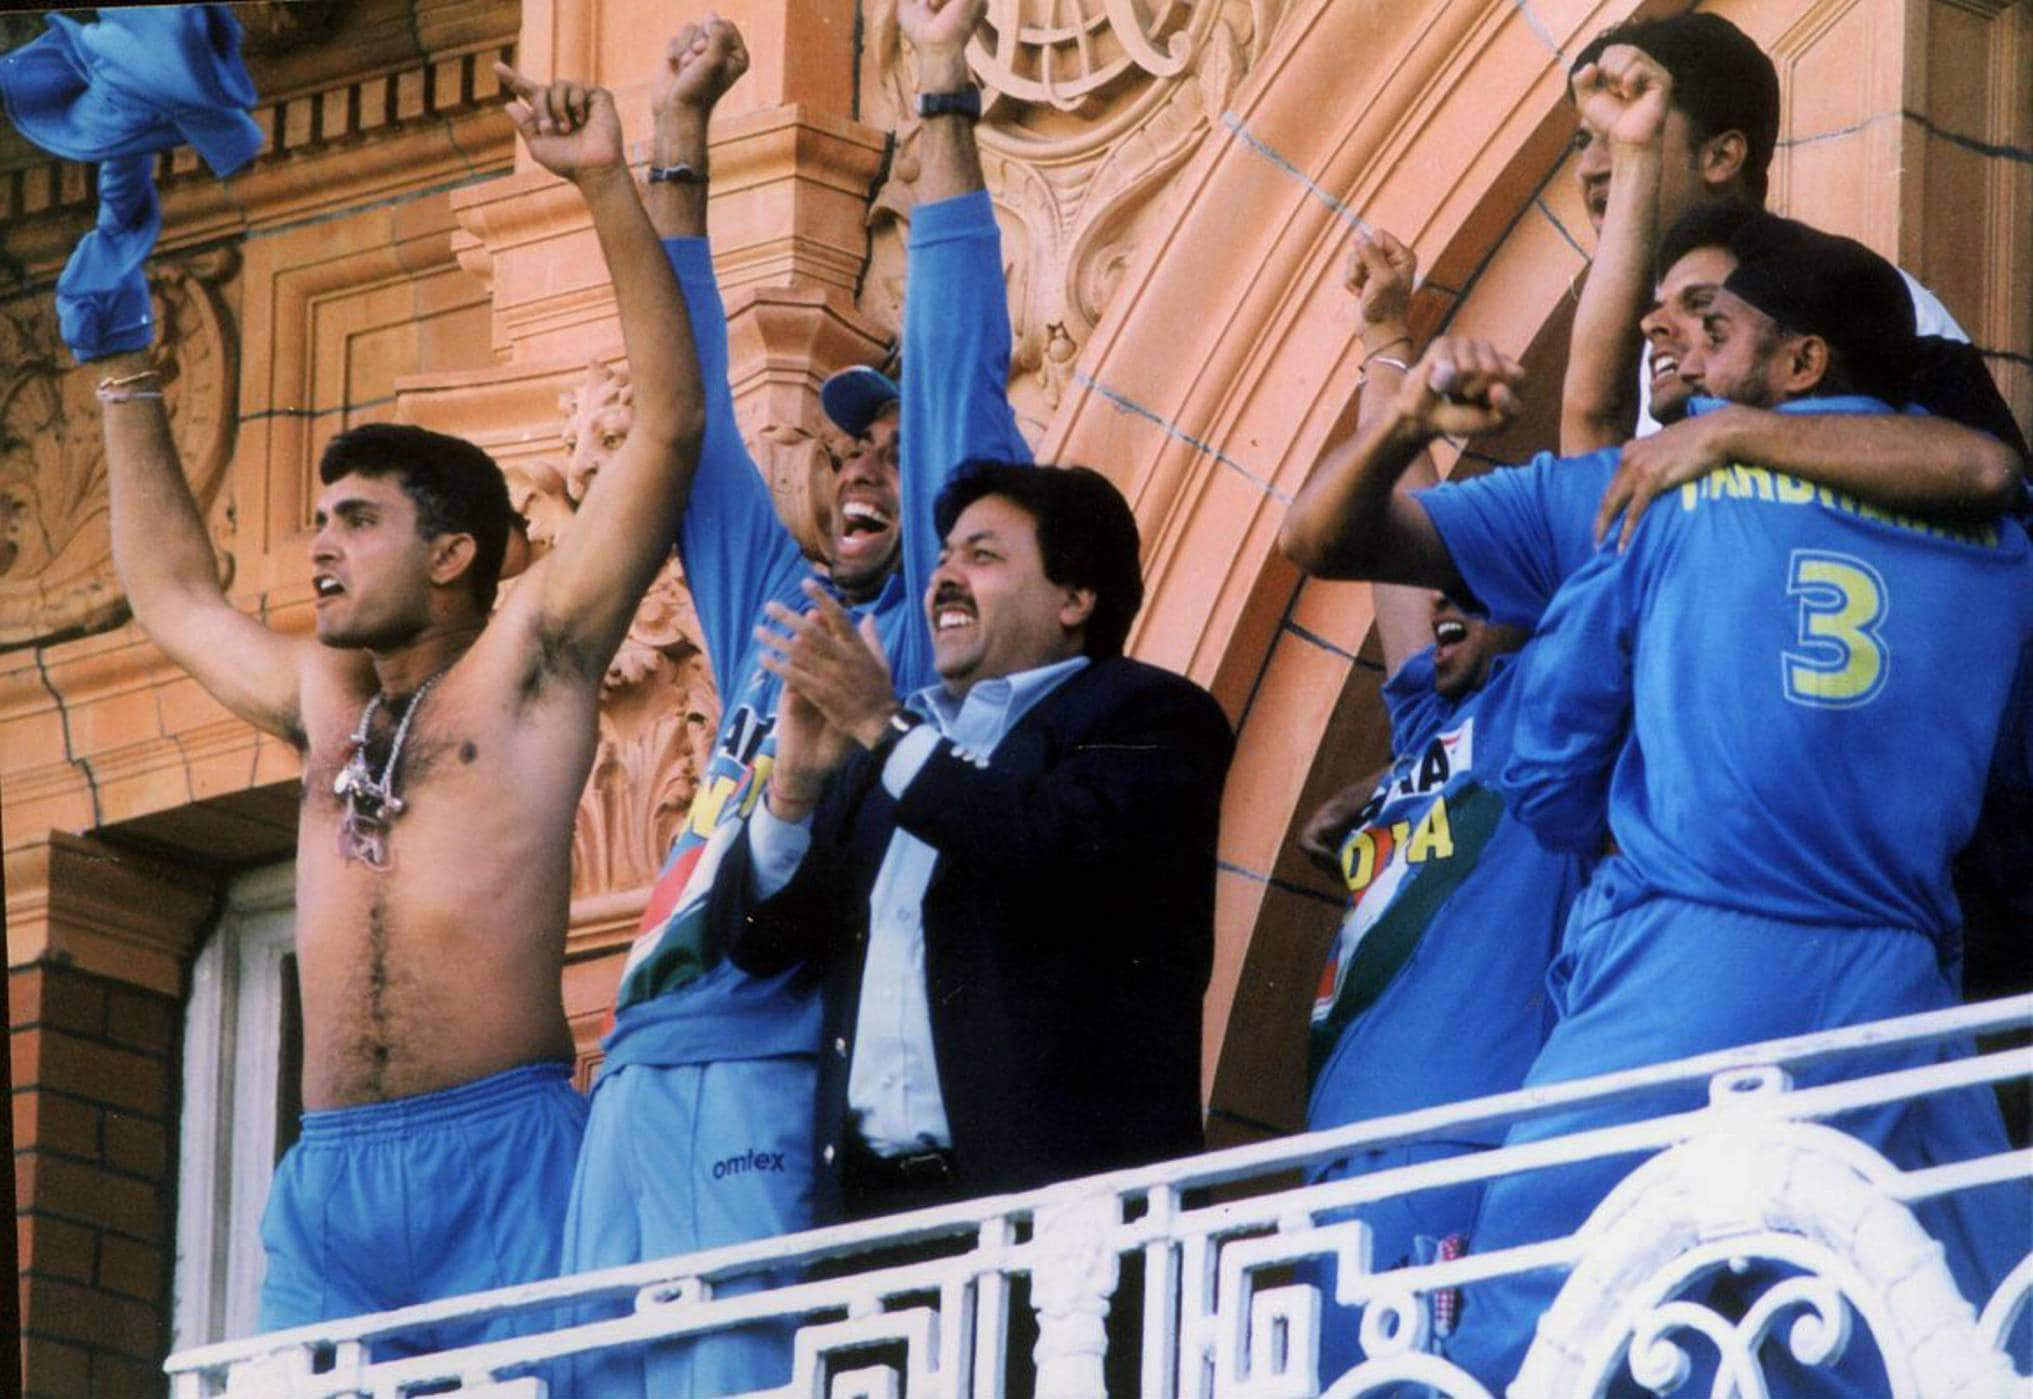 WATCH: On this day in 2002, India won NatWest series in a nail-biting final as Sourav Ganguly waived shirt in Lord's balcony